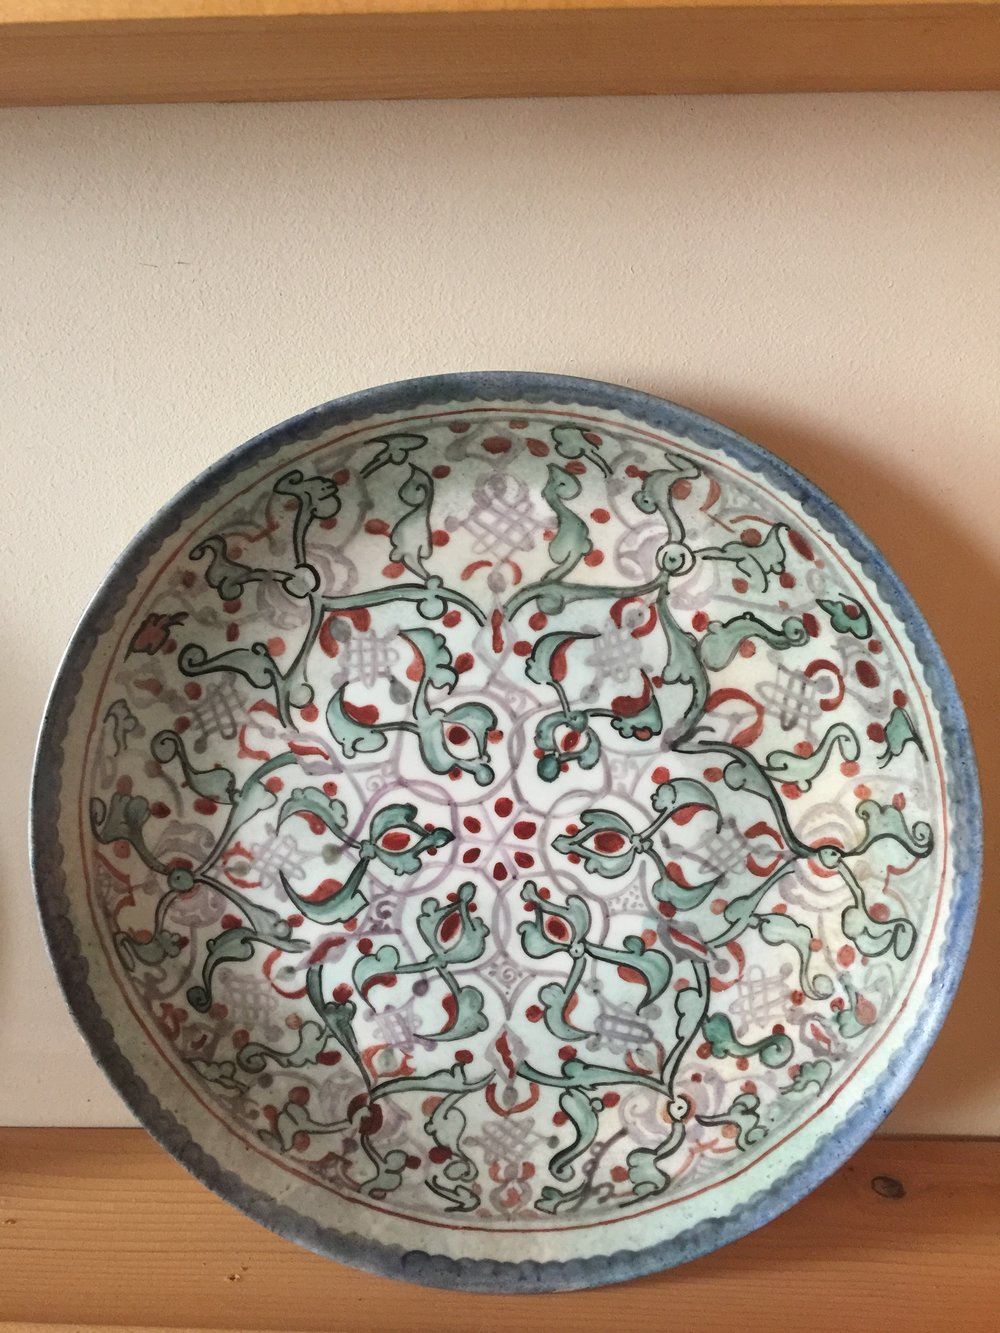 Detail of painted plate